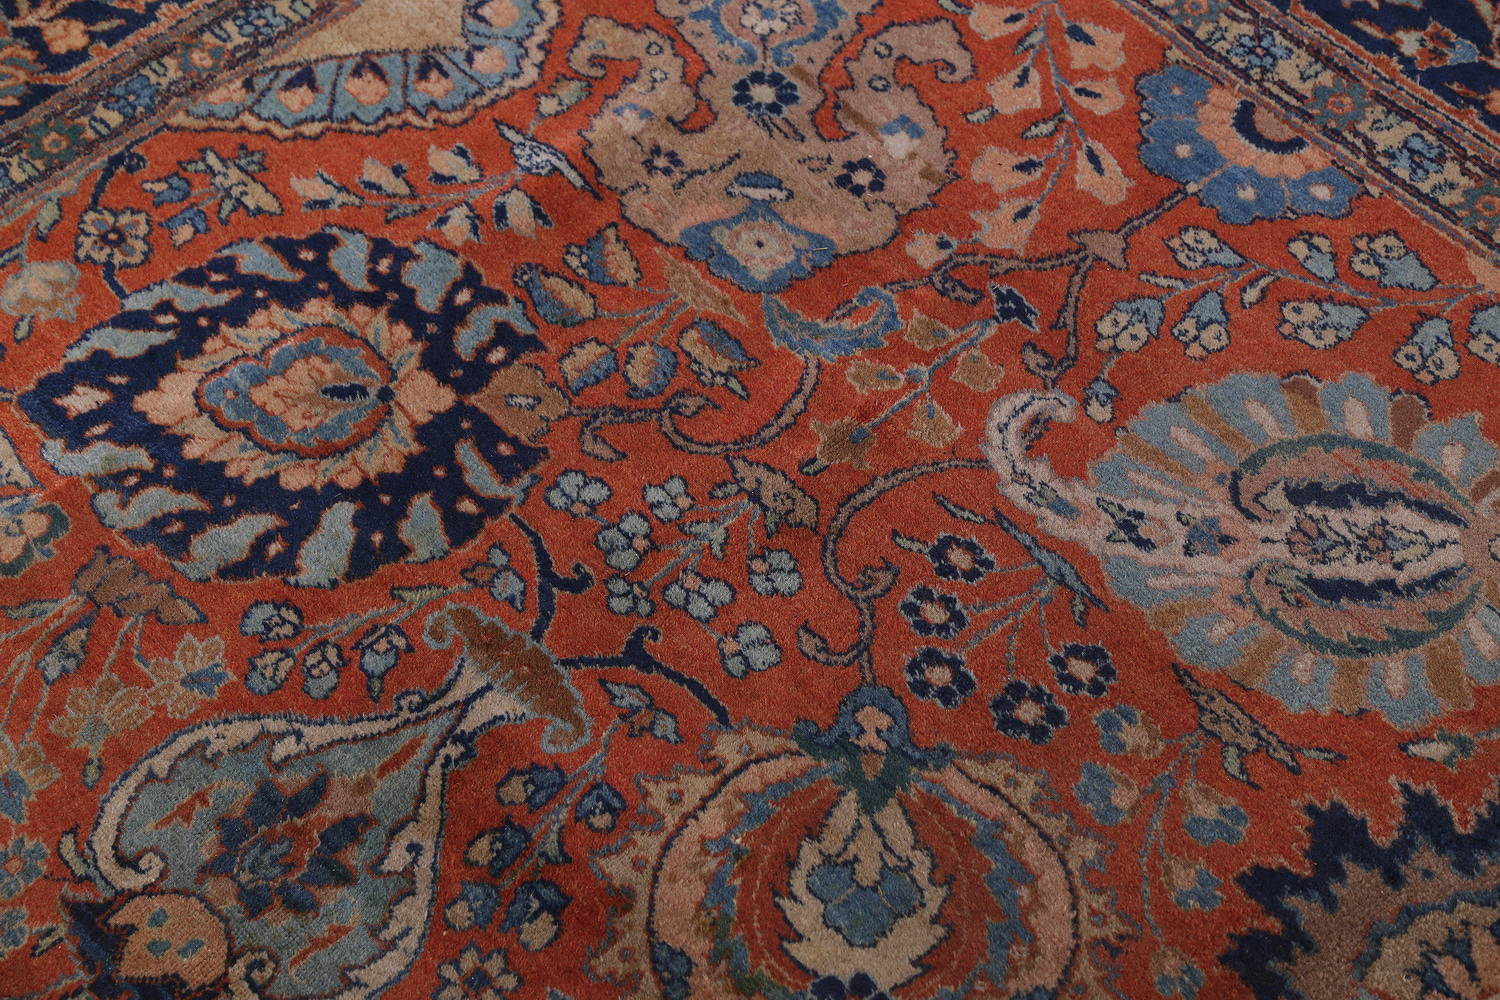 Antique Floral Orange Tabriz Persian Hand-Knotted Area Rug Wool 10x13